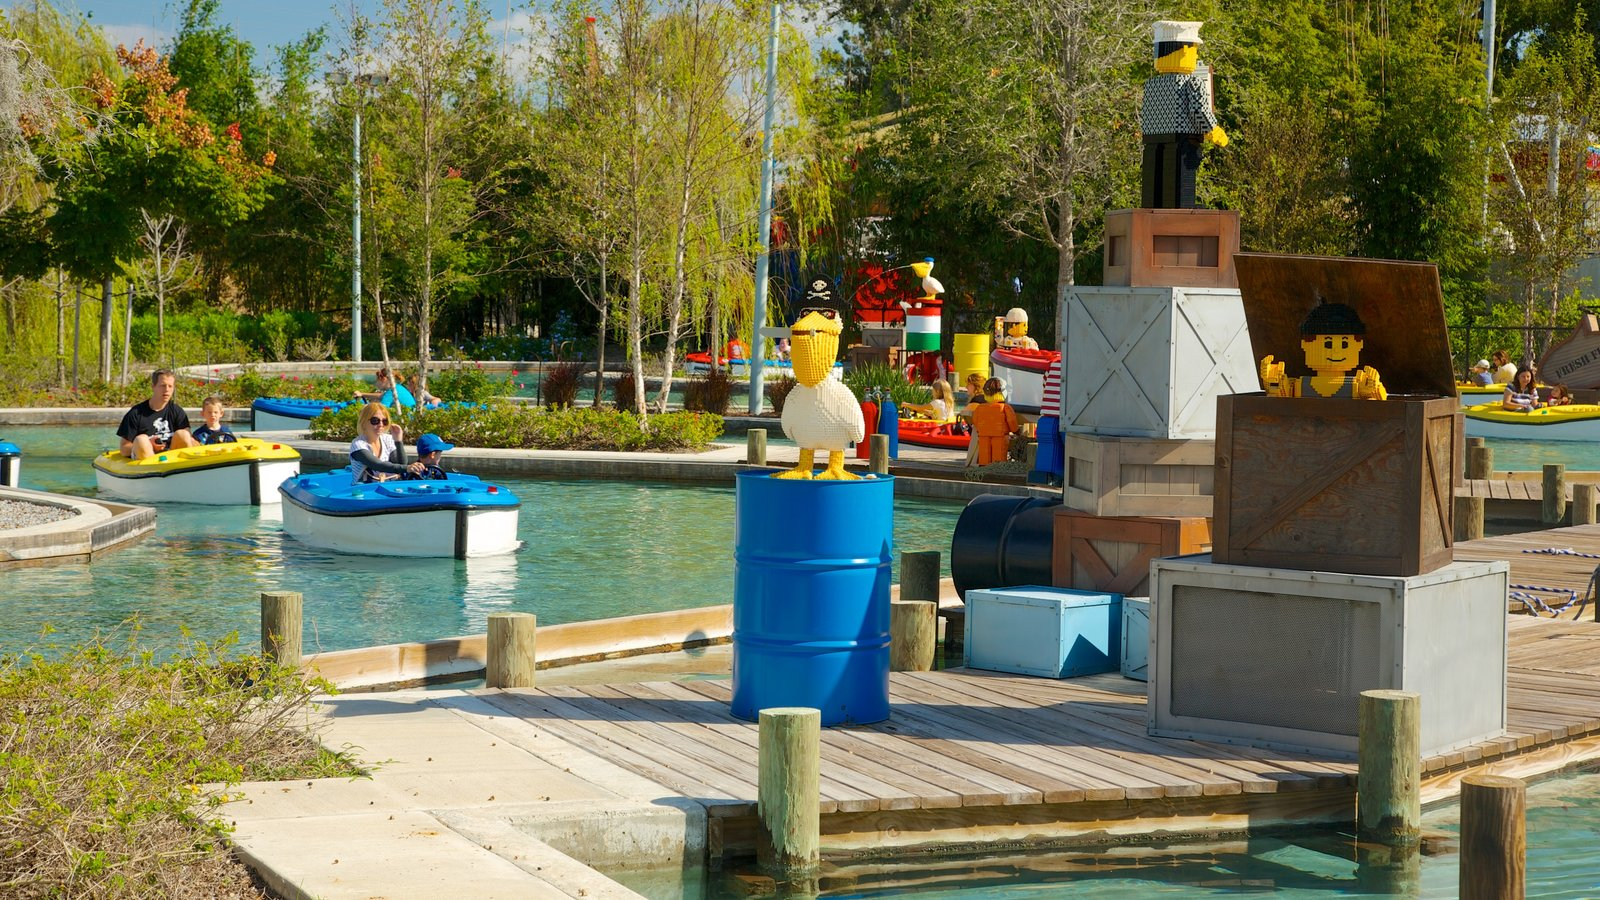 Legoland Florida which includes rides, a park and boating